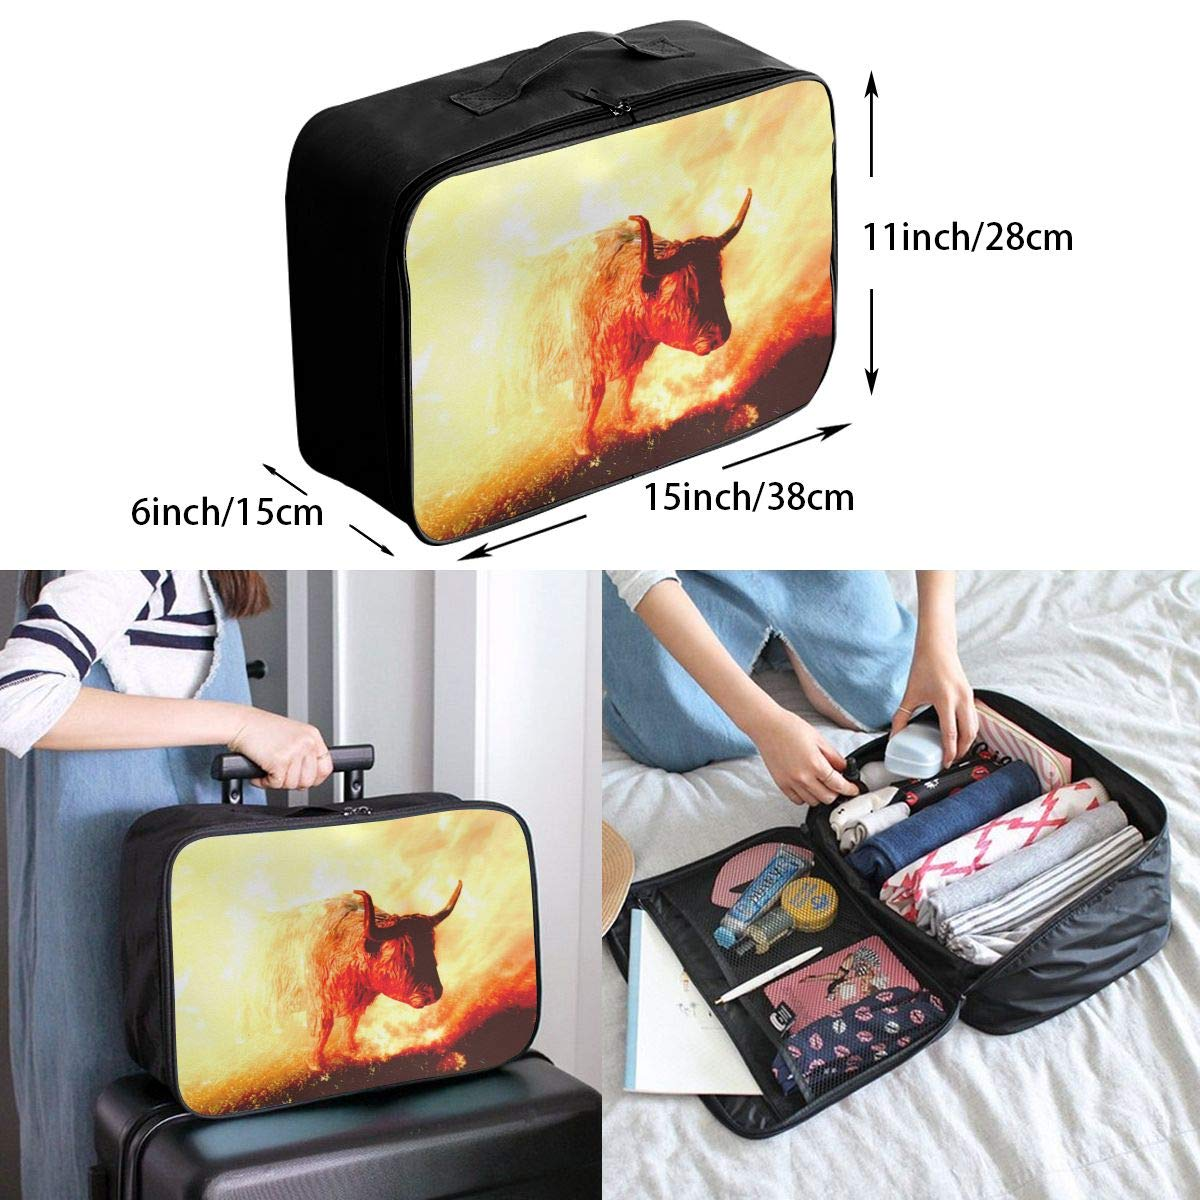 Travel Luggage Duffle Bag Lightweight Portable Handbag Cattle Animals Pattern Large Capacity Waterproof Foldable Storage Tote